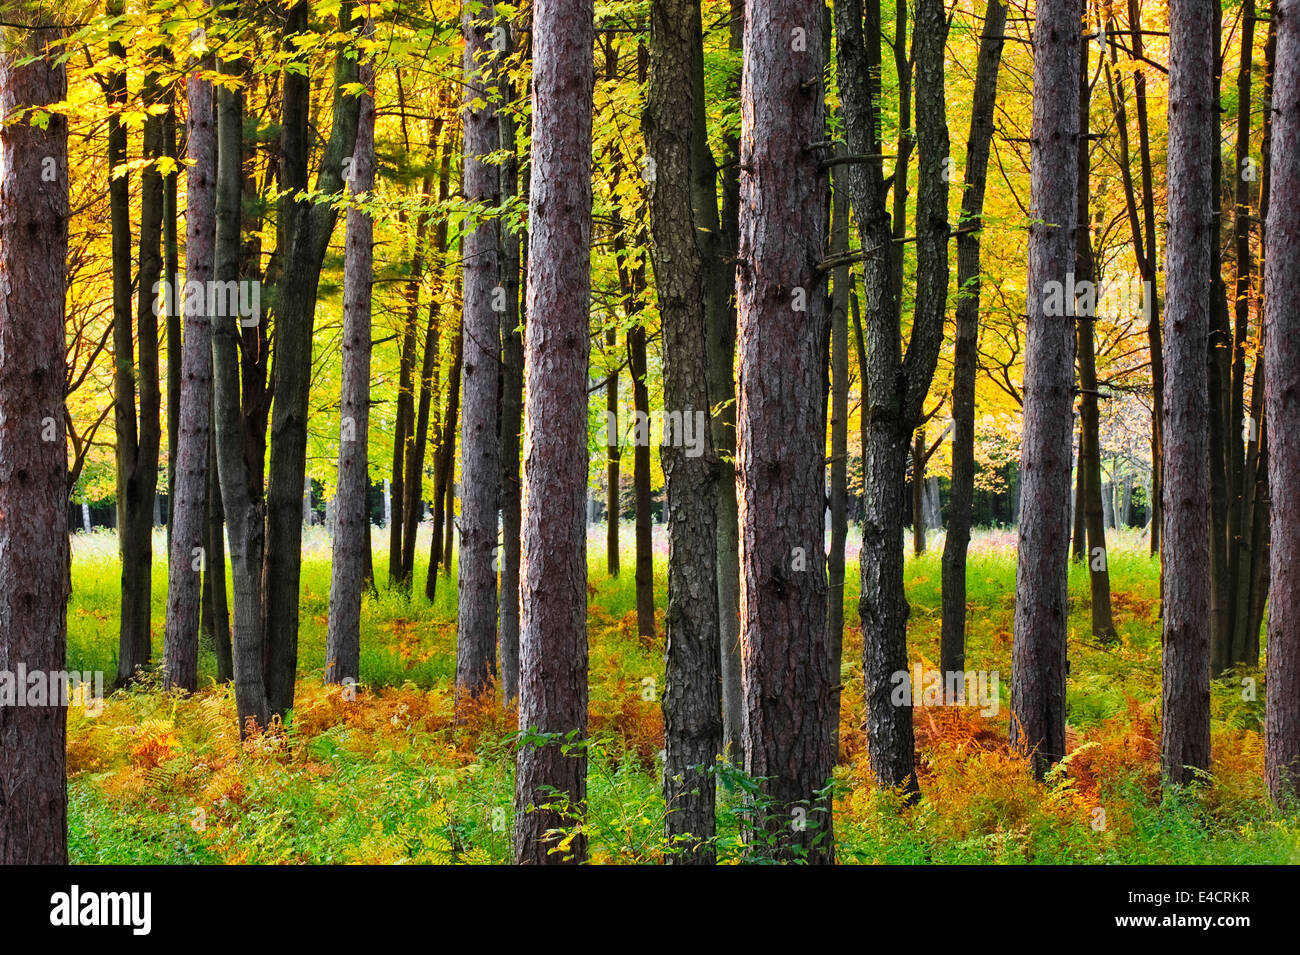 A pine forest in Southeast Michigan during fall color. - Stock Image